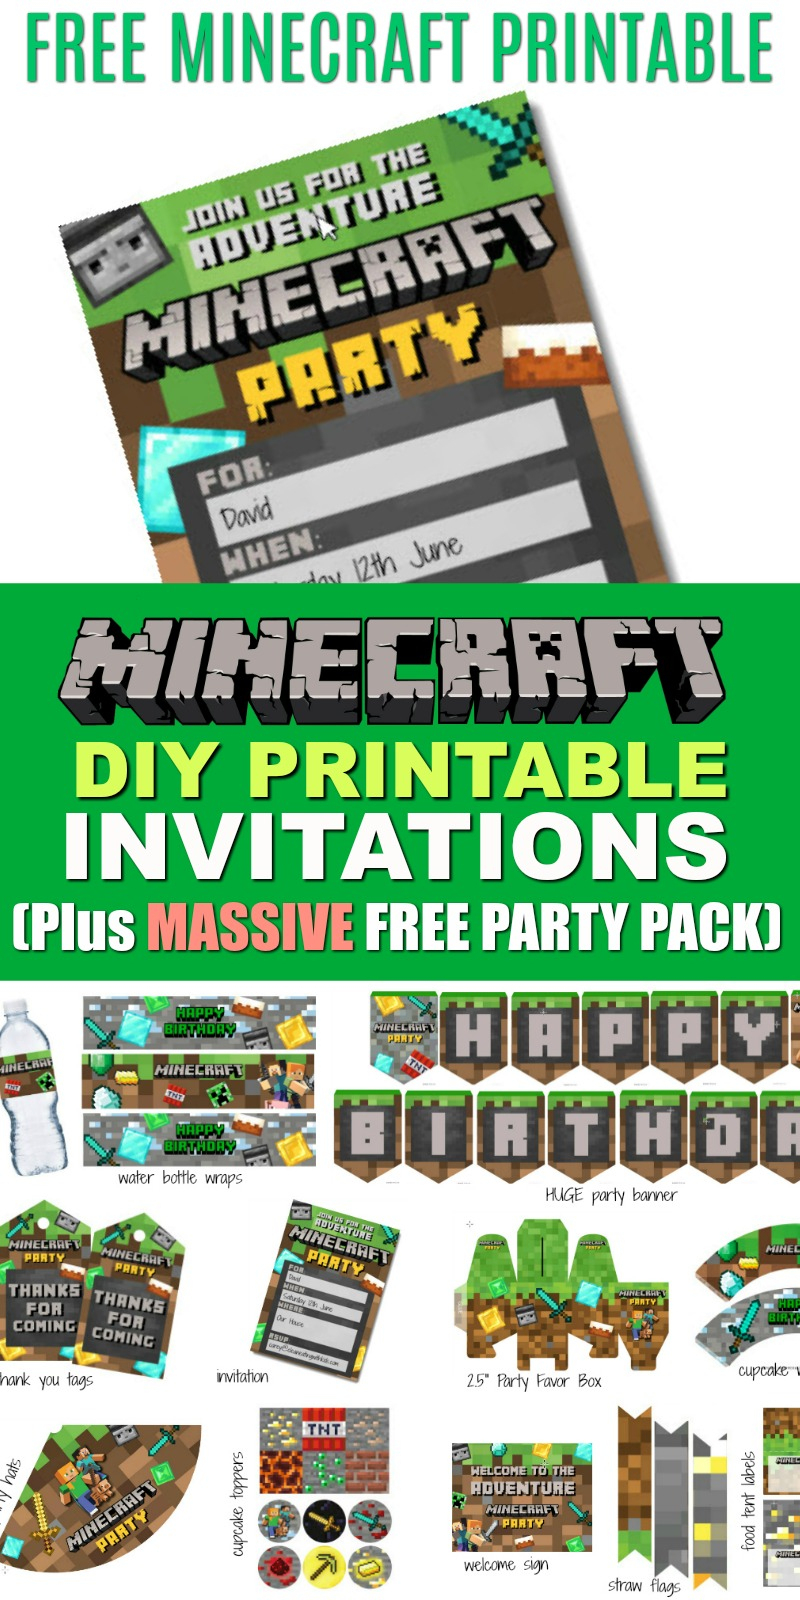 Free Diy Printable Minecraft Birthday Invitation - Clean Eating With - Free Printable Minecraft Birthday Party Invitations Templates